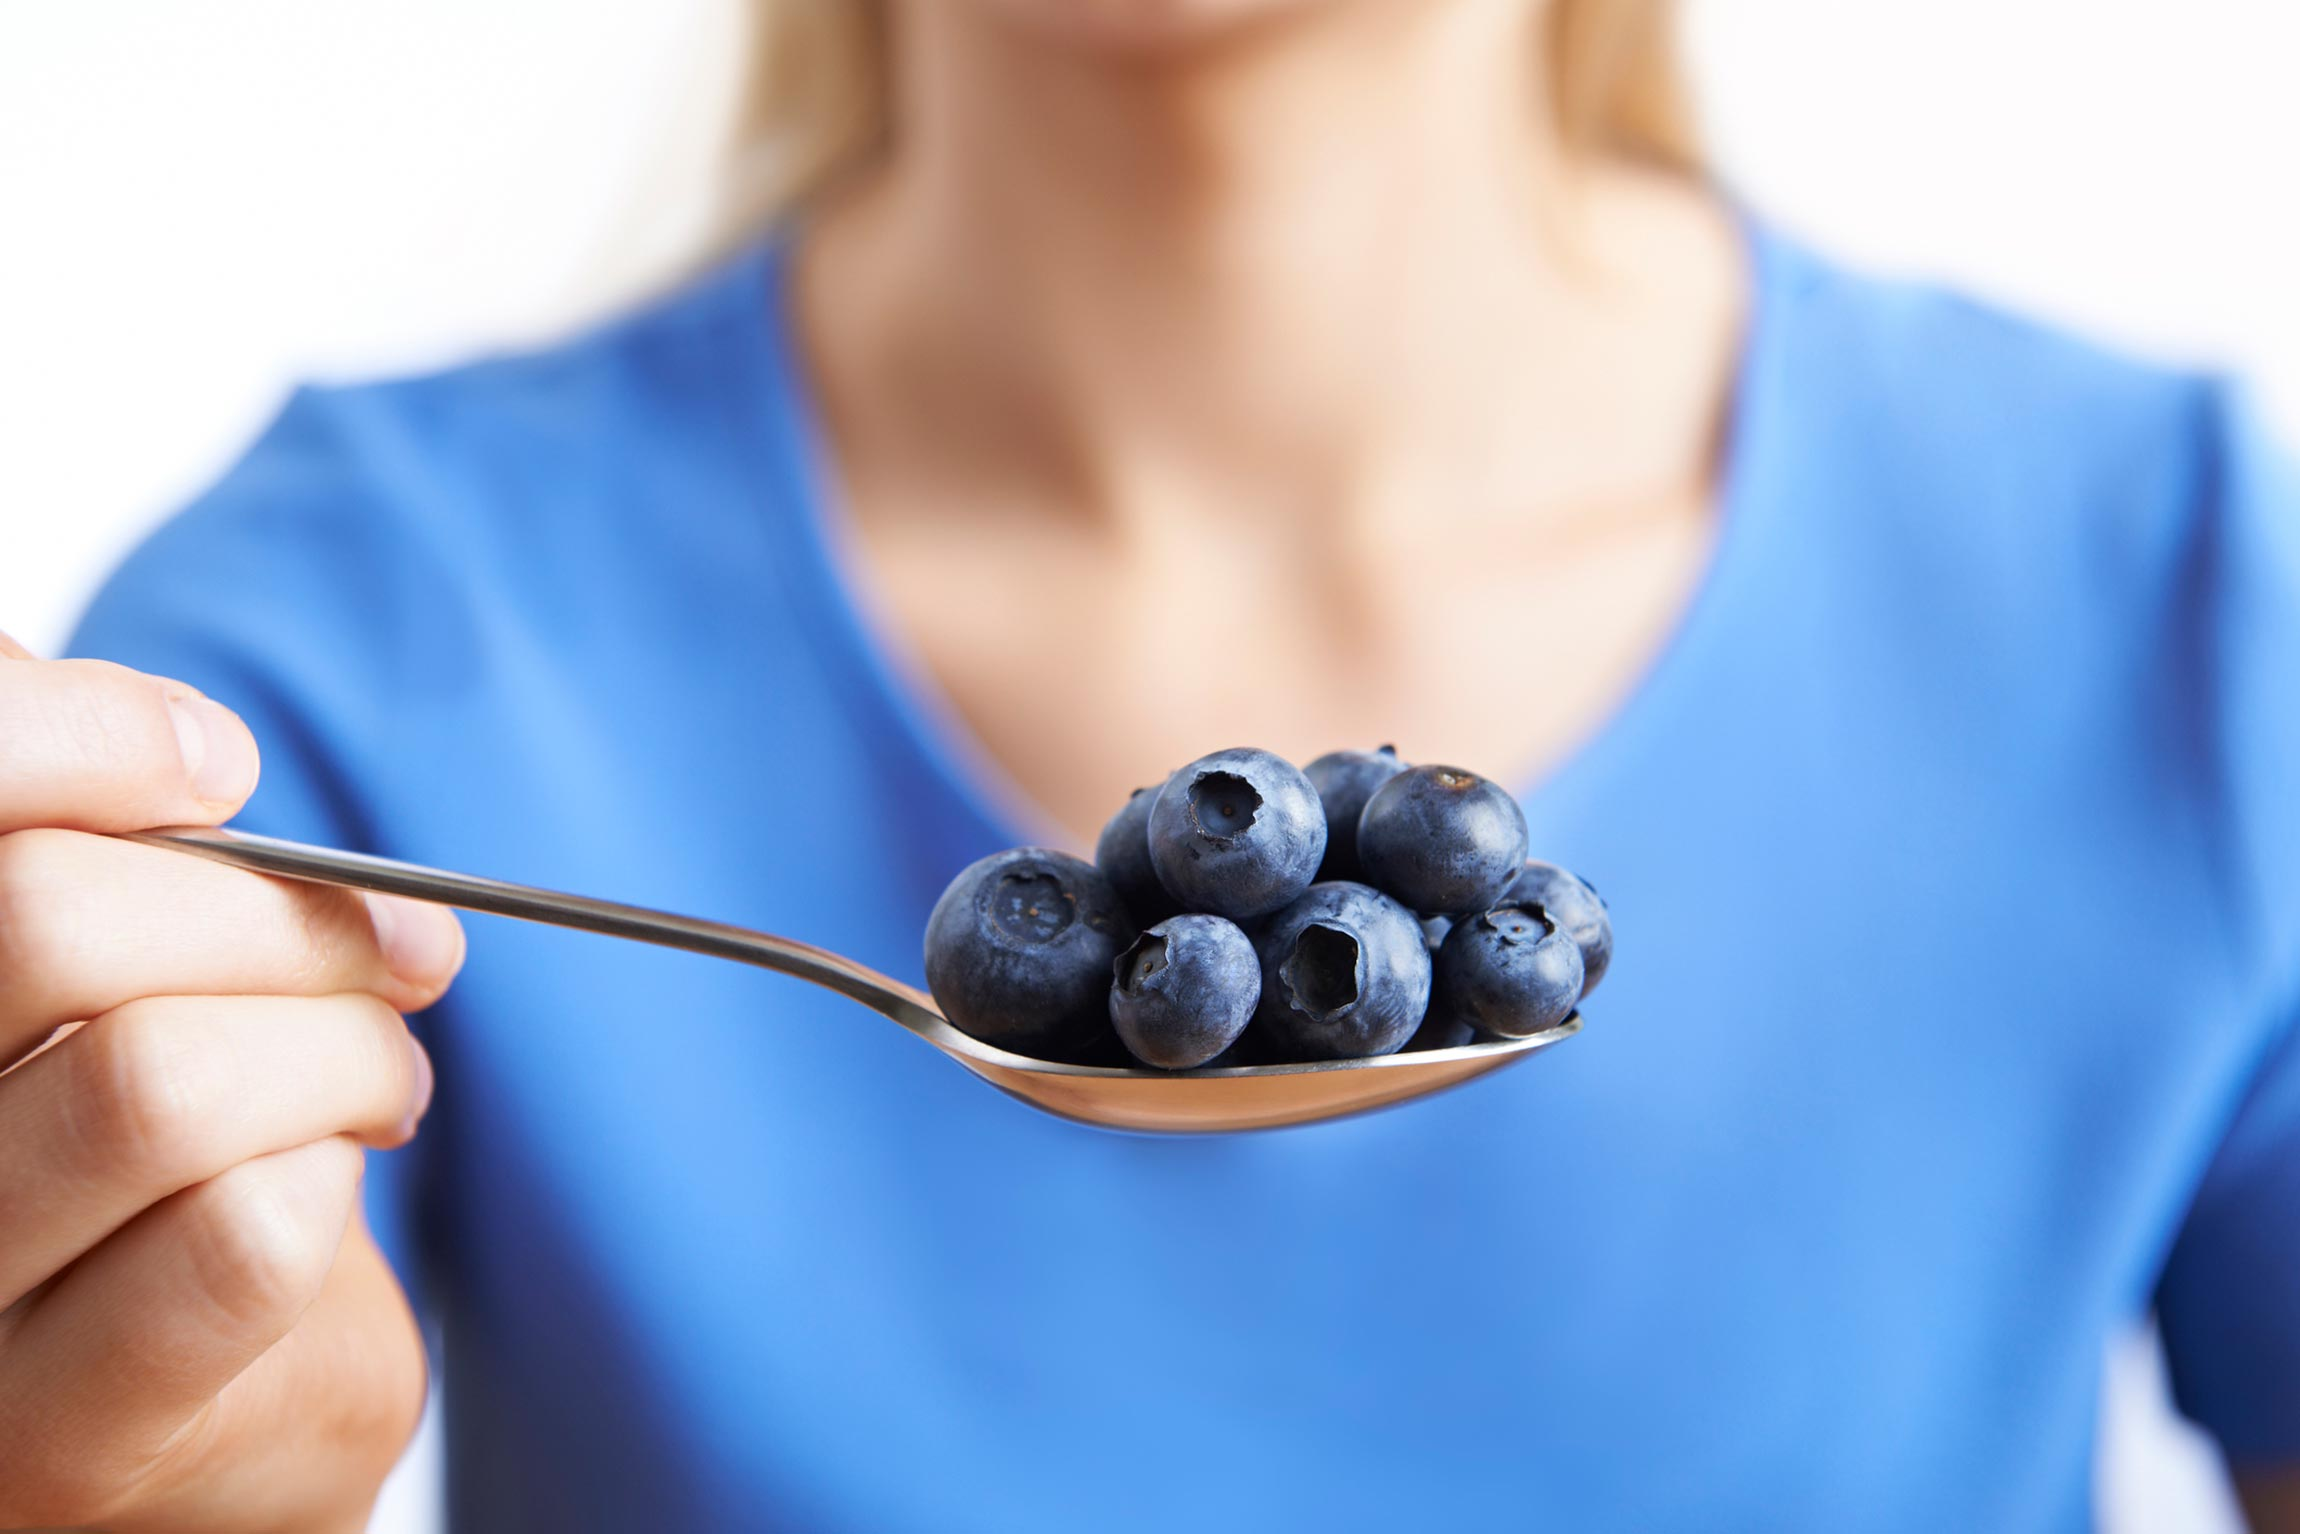 Raw Is The Best Way To Eat Blueberries